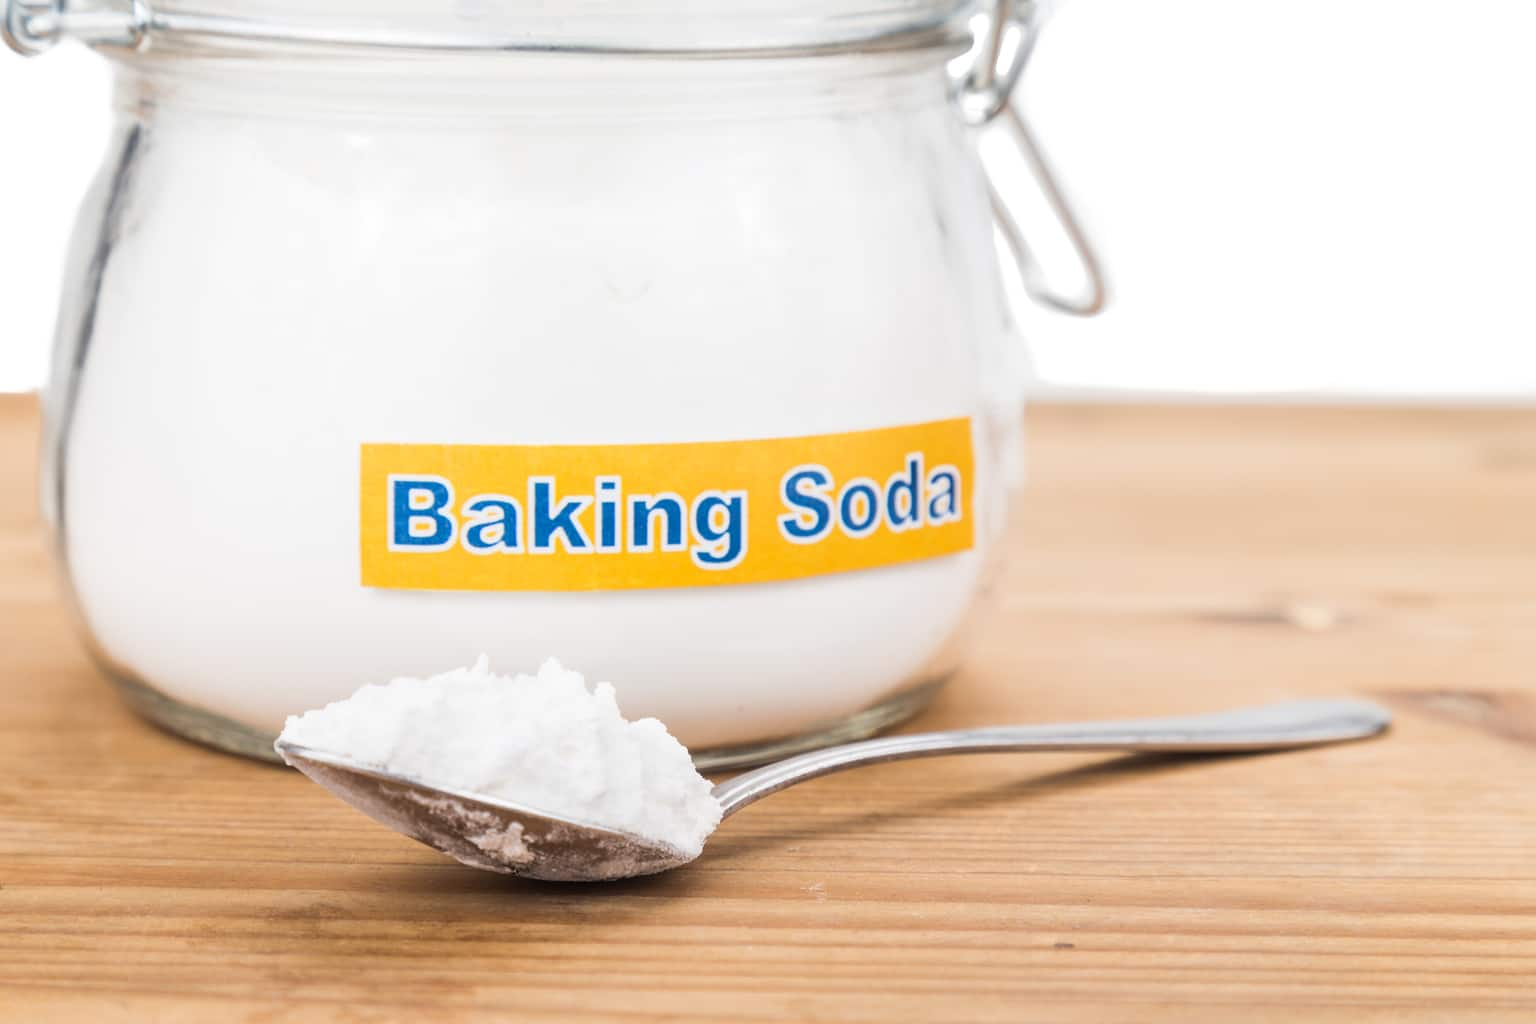 Baking soda: does it help cancer? Does it make you run faster?